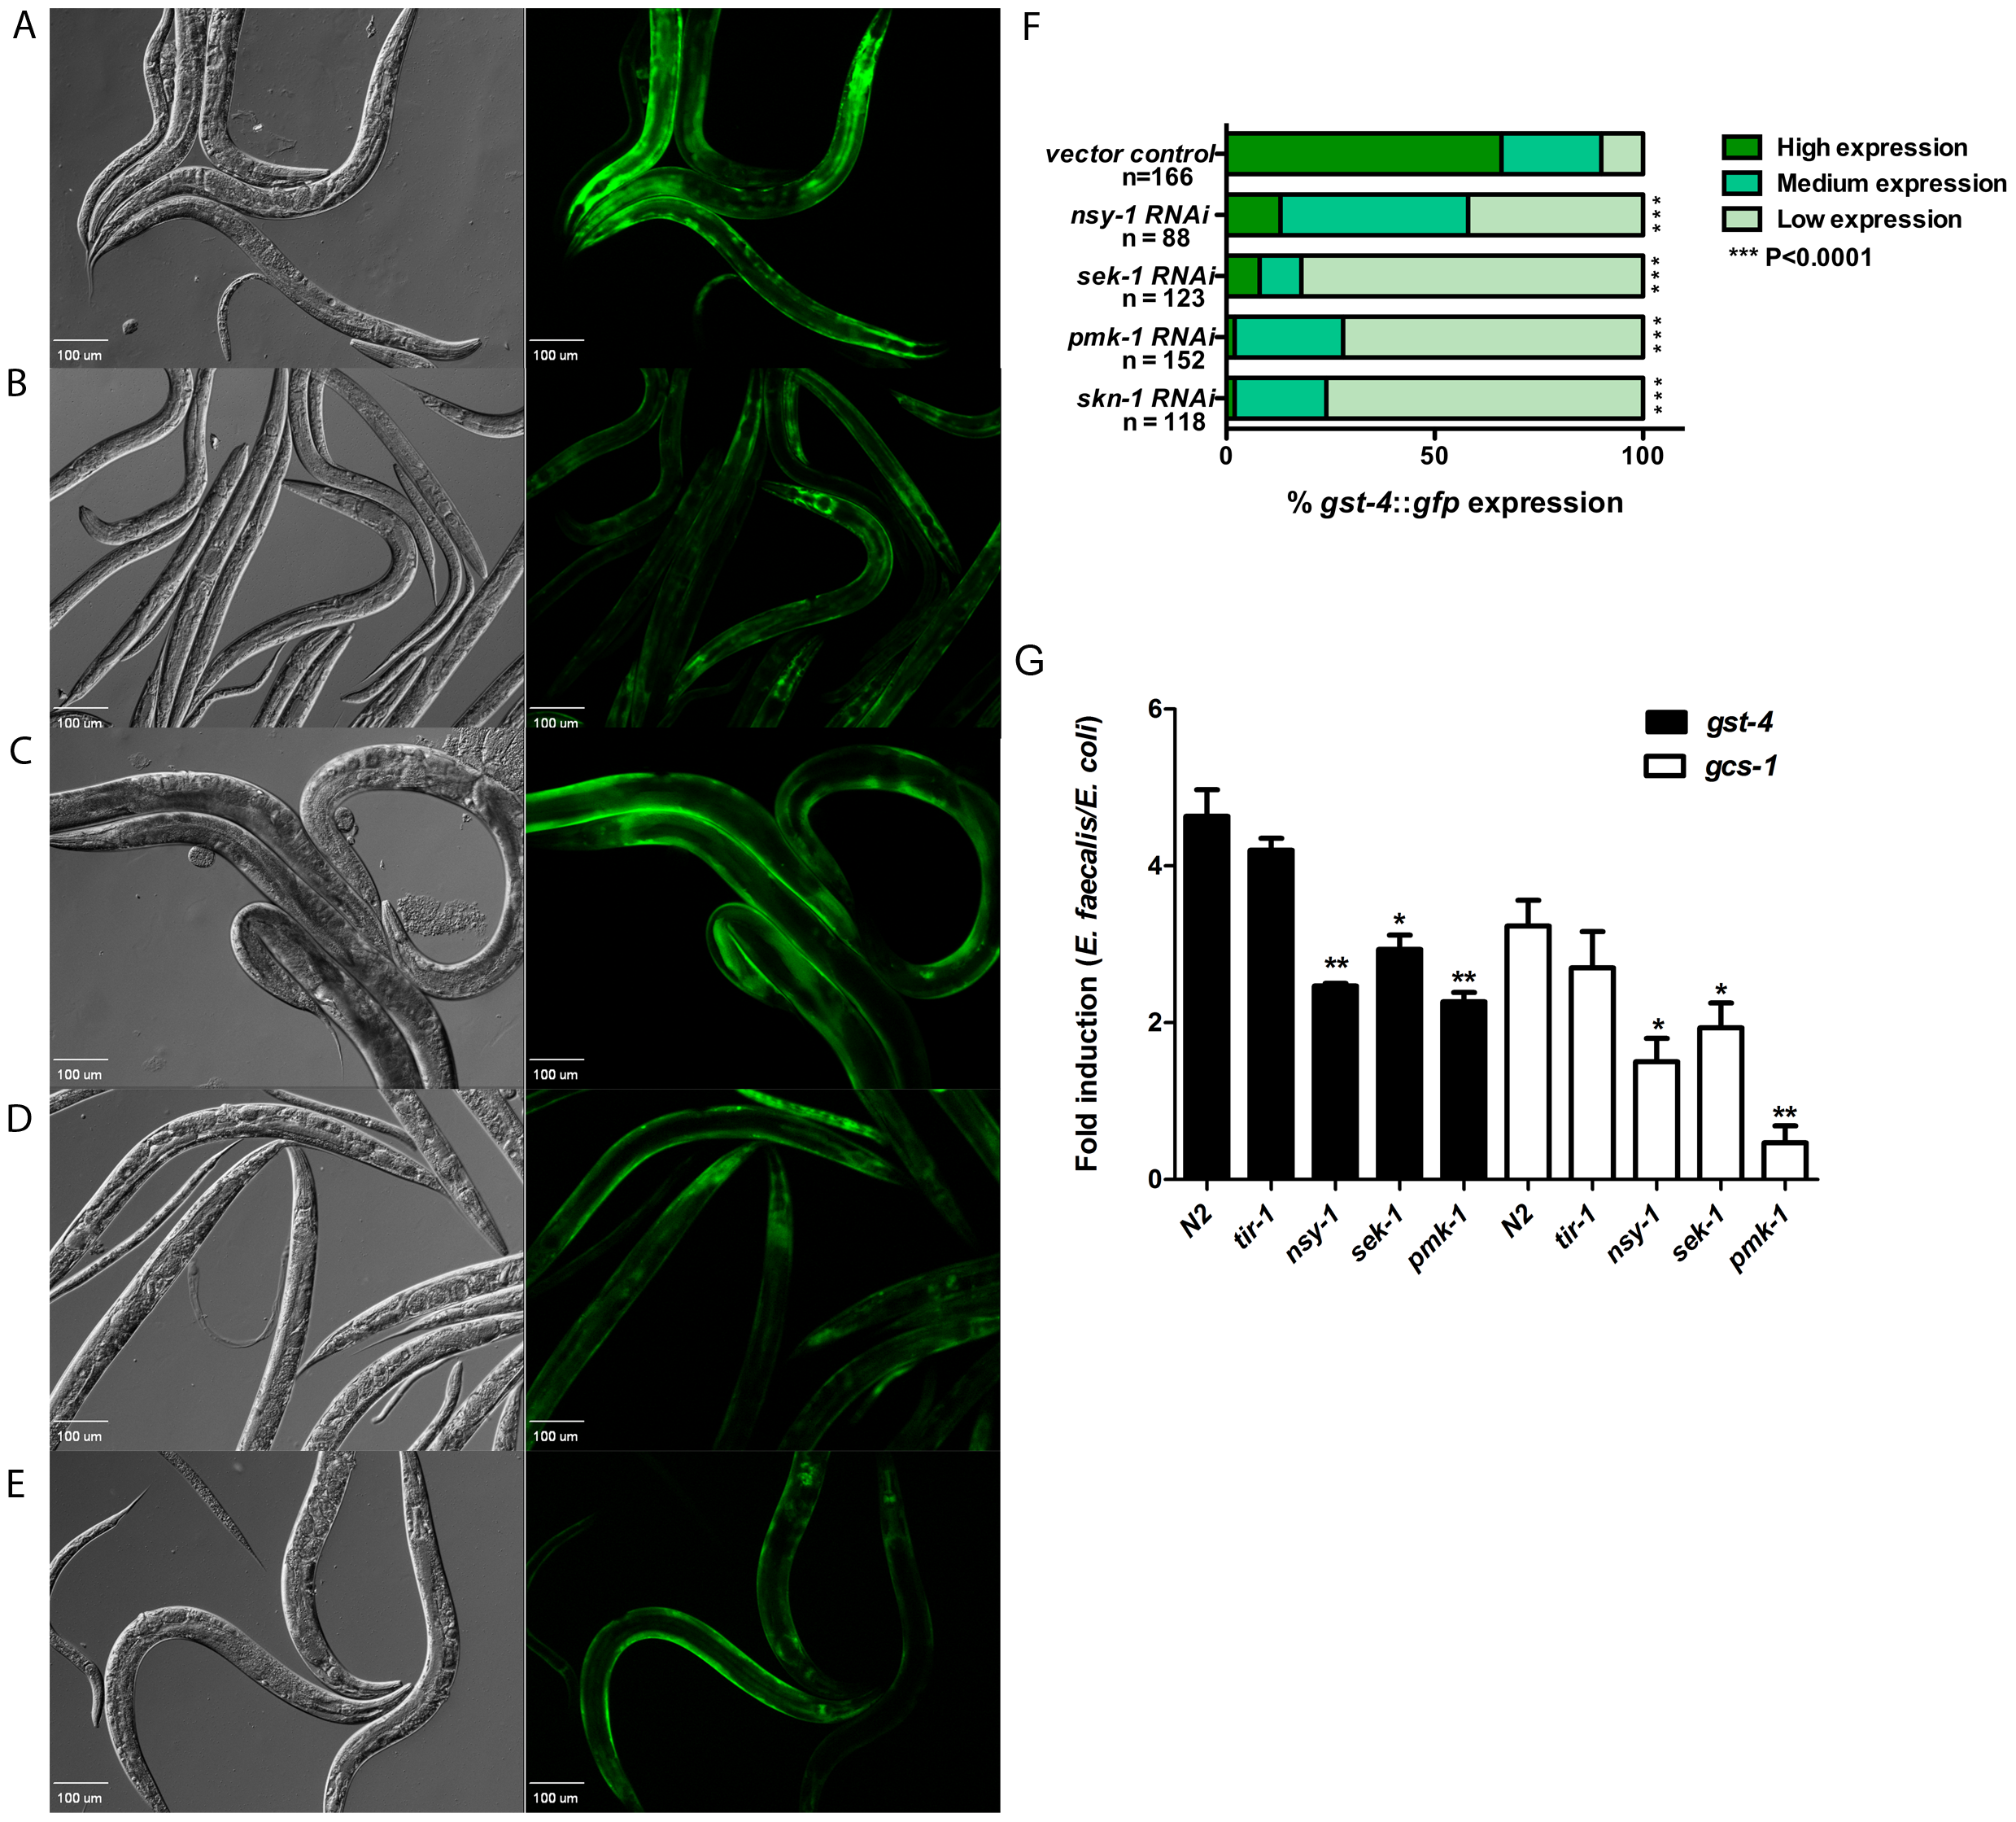 Activation of SKN-1 in response to pathogens is dependent on the p38-MAPK pathway.